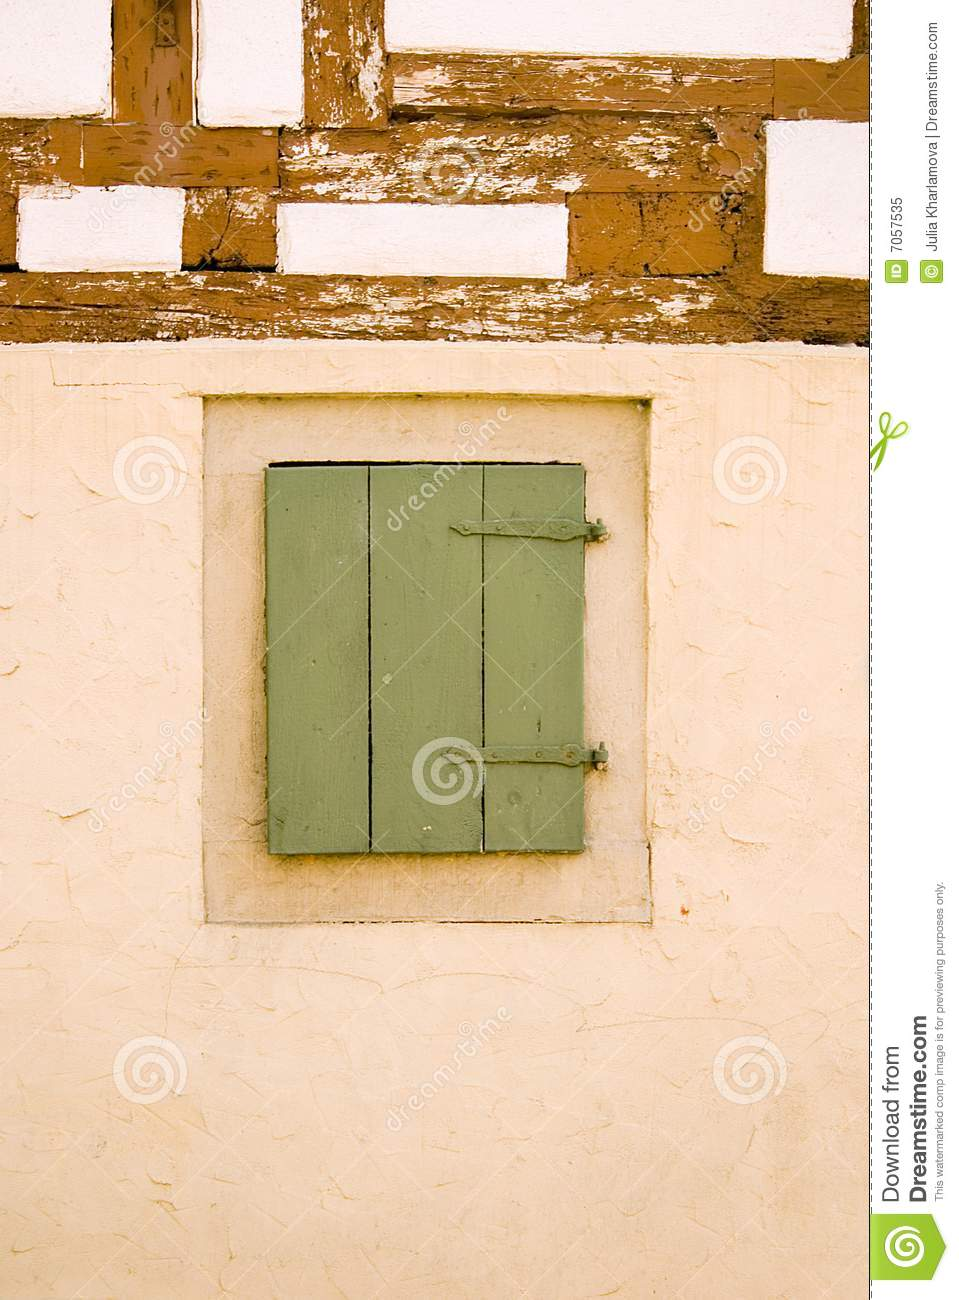 Old german house wall with window royalty free stock photo for Window in german